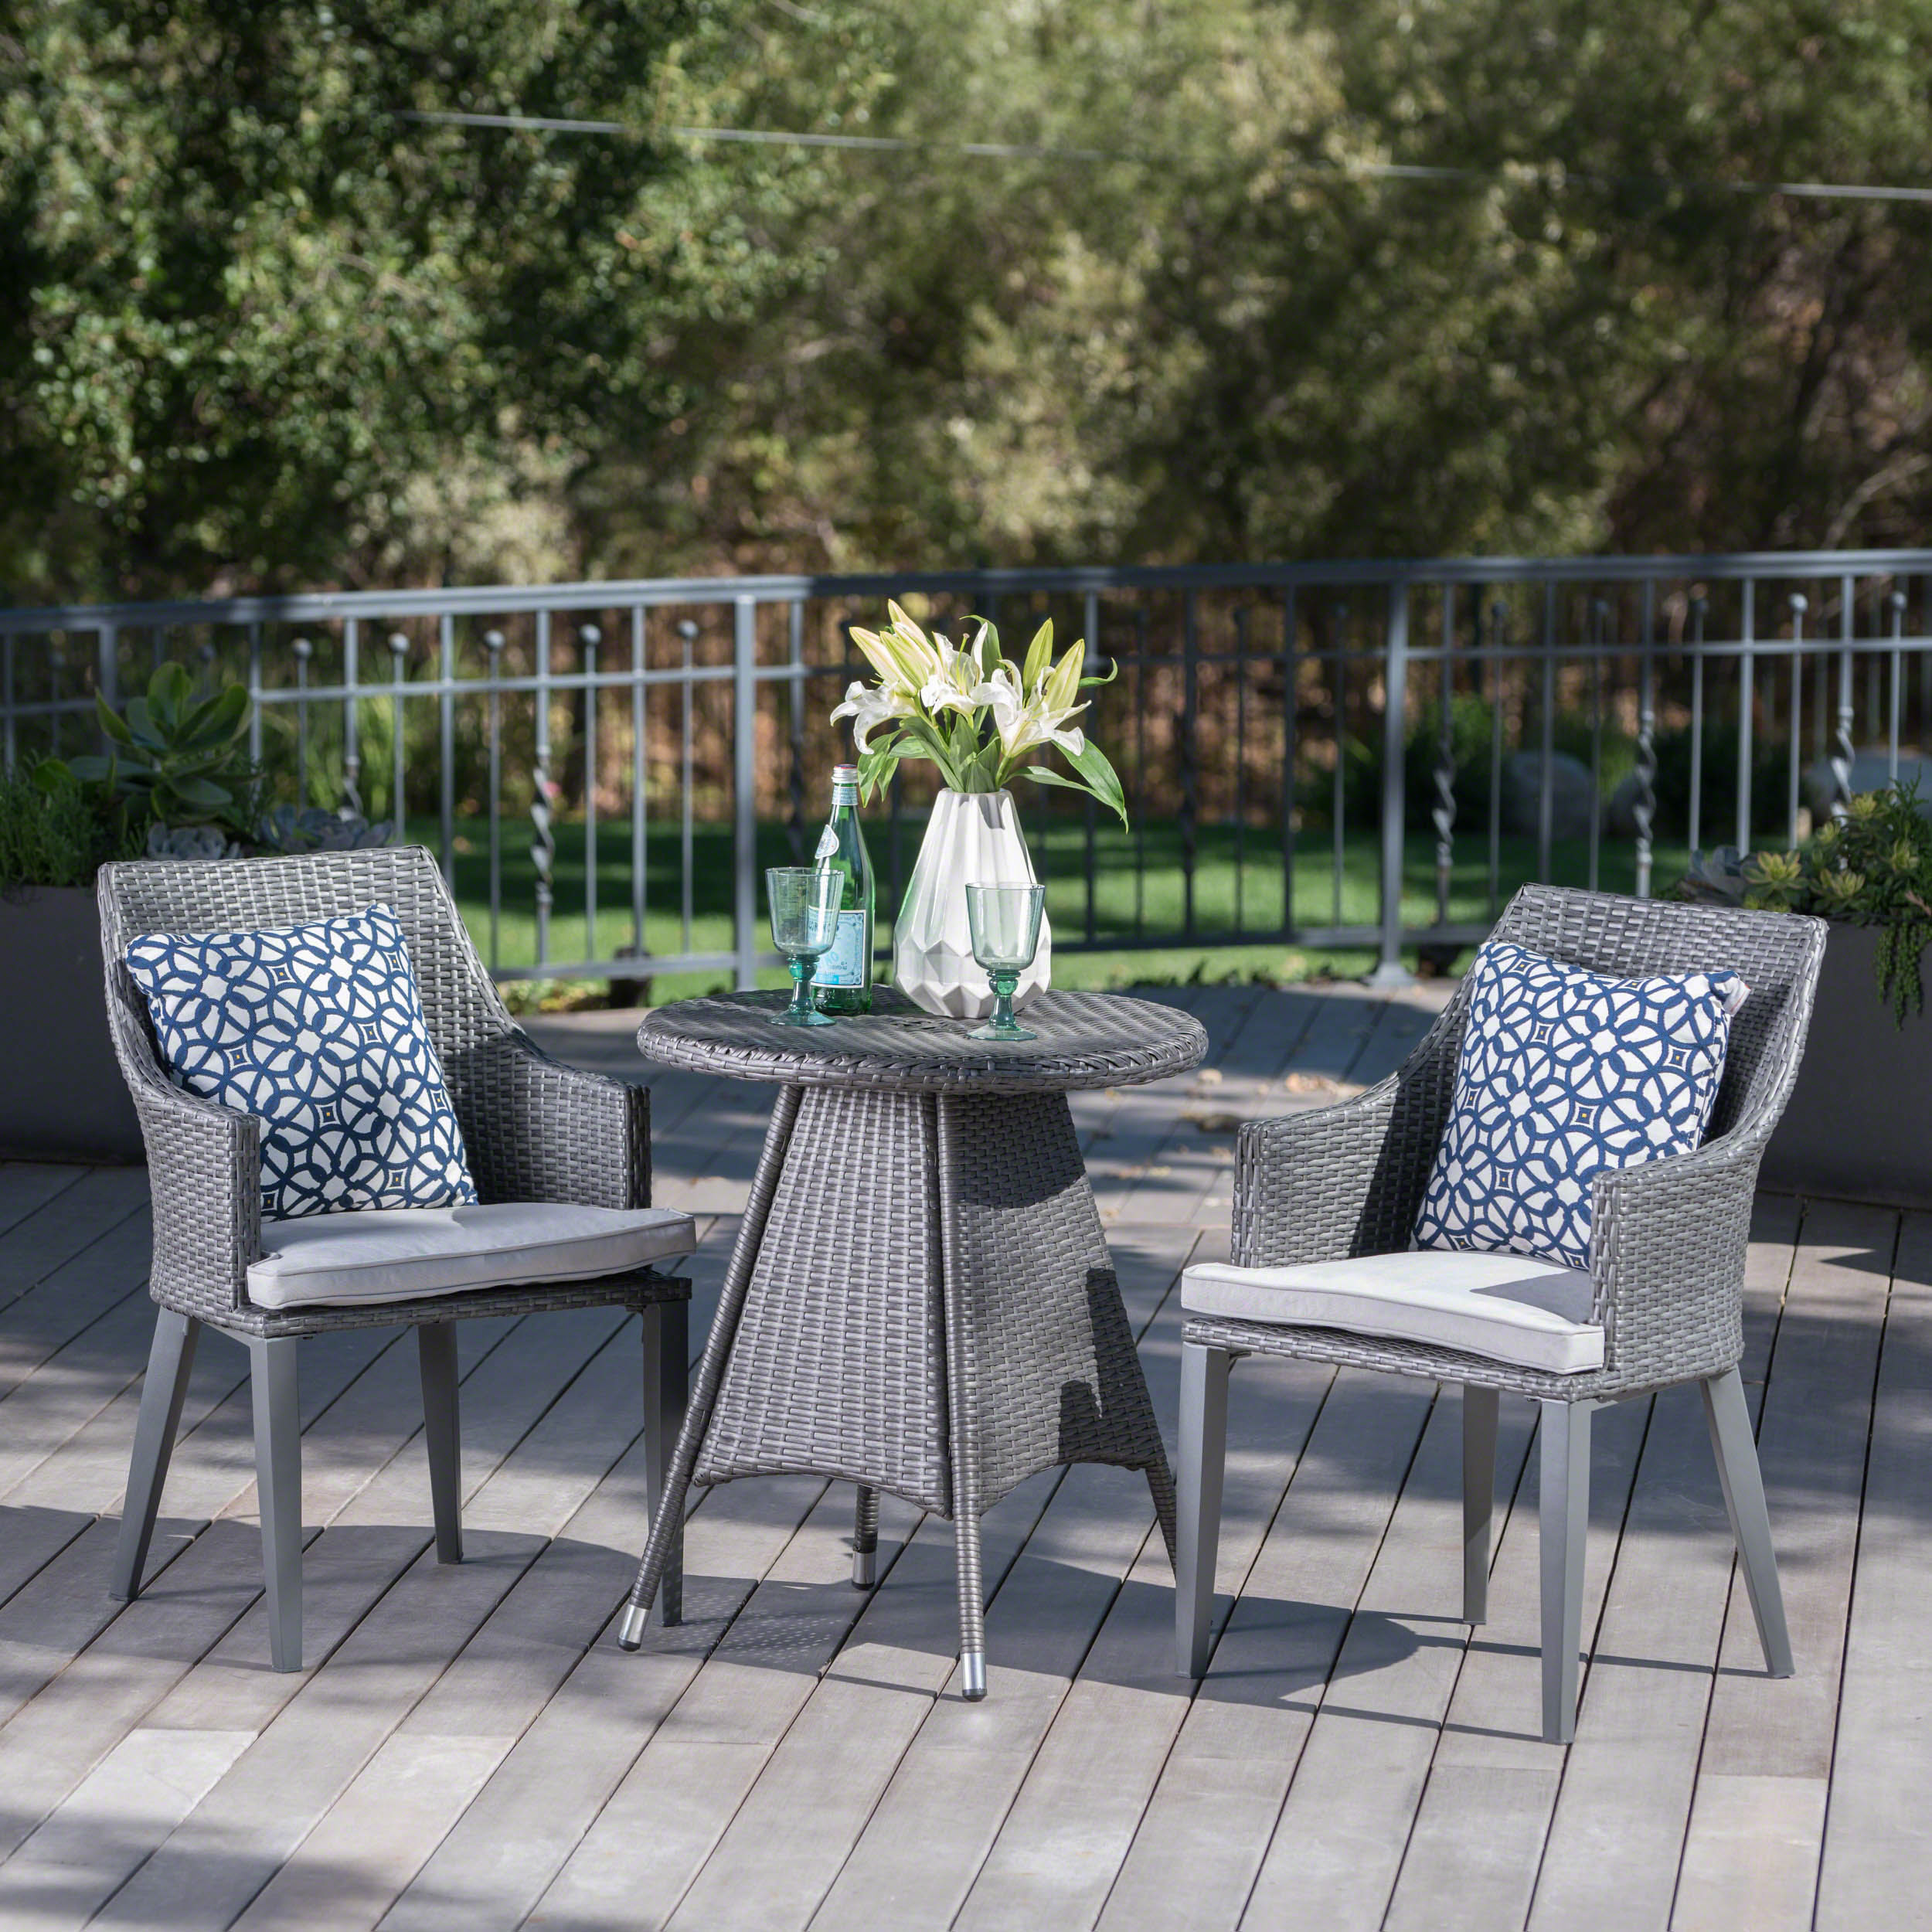 Hillsdale Outdoor 3 Piece Wicker Round Bistro Set with Cushions, Grey